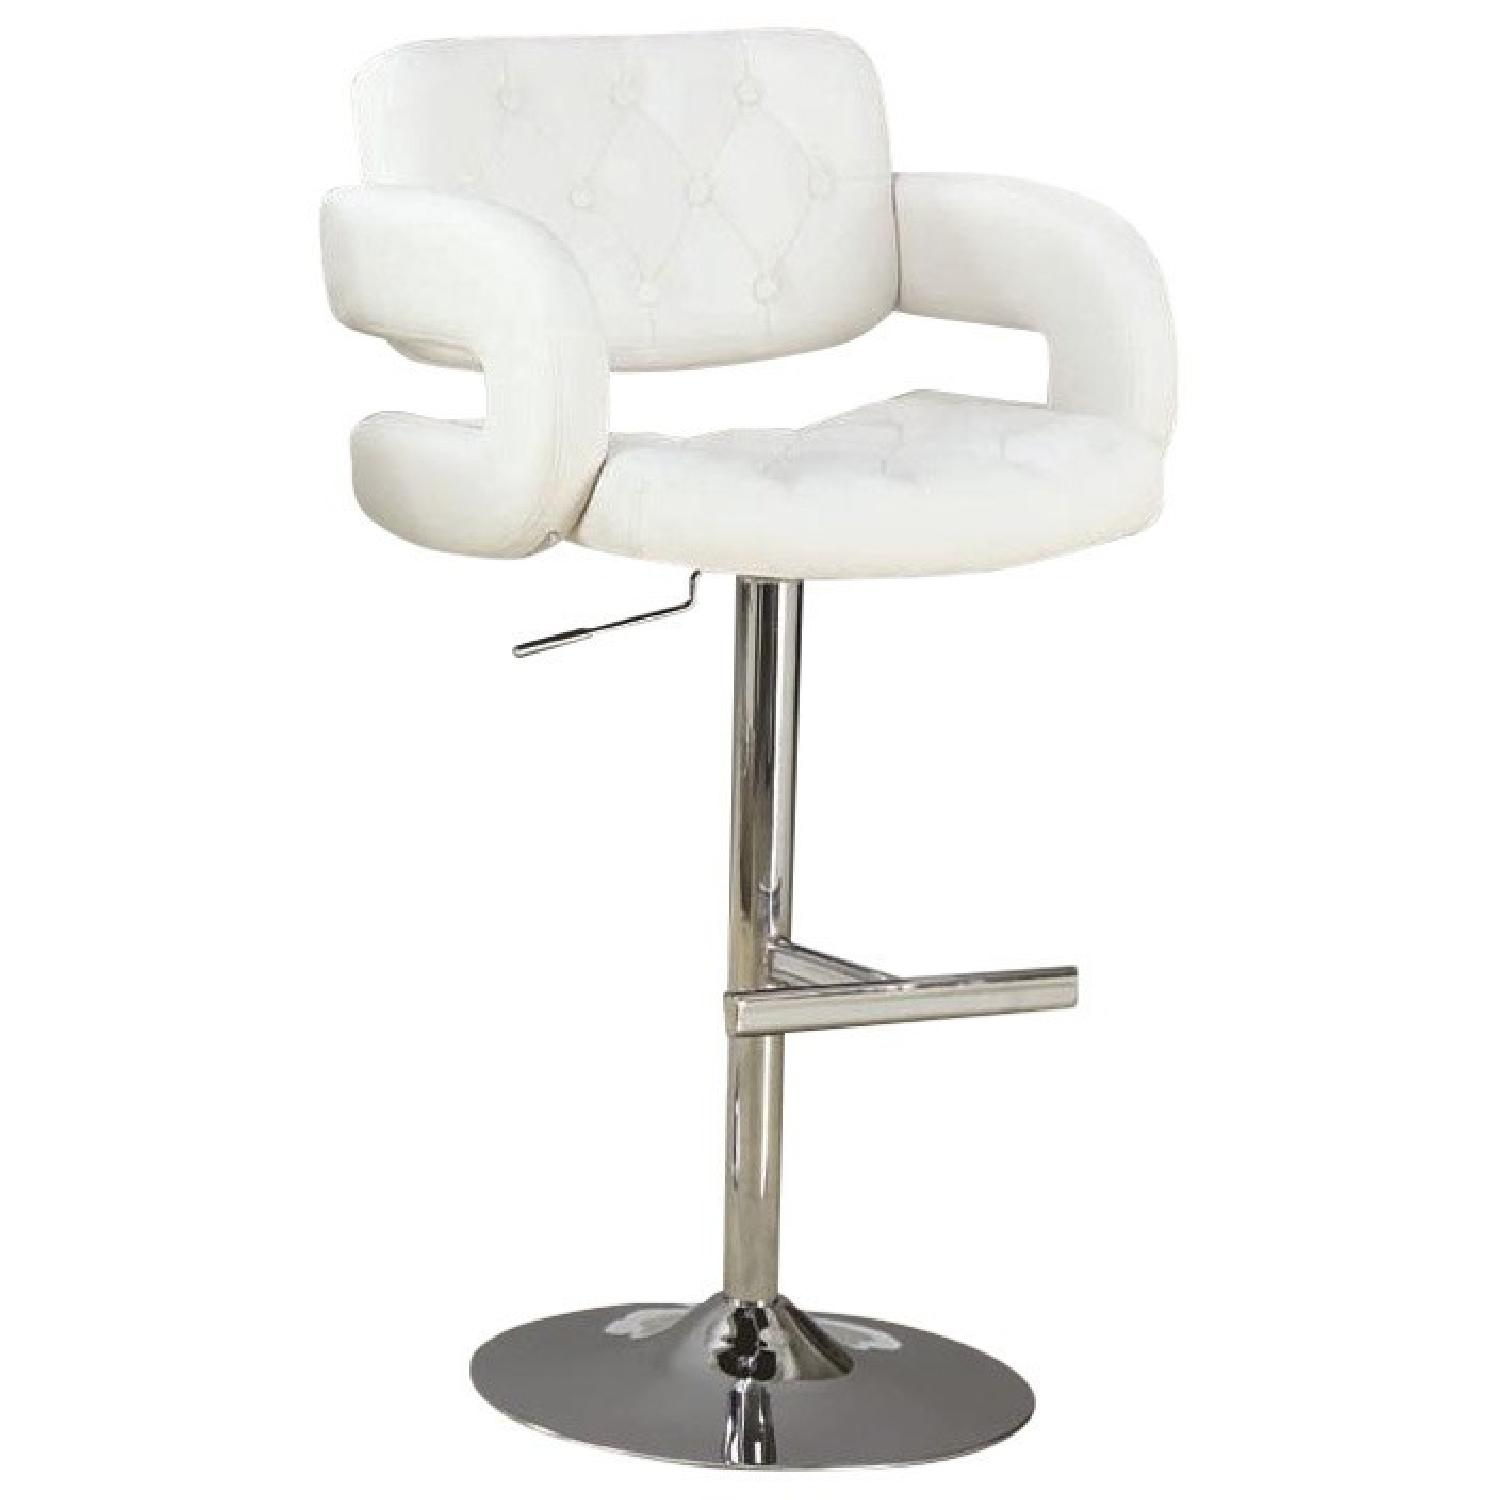 Padded Barstool w/ Tufted Seat/Back & Armrests in White Leat